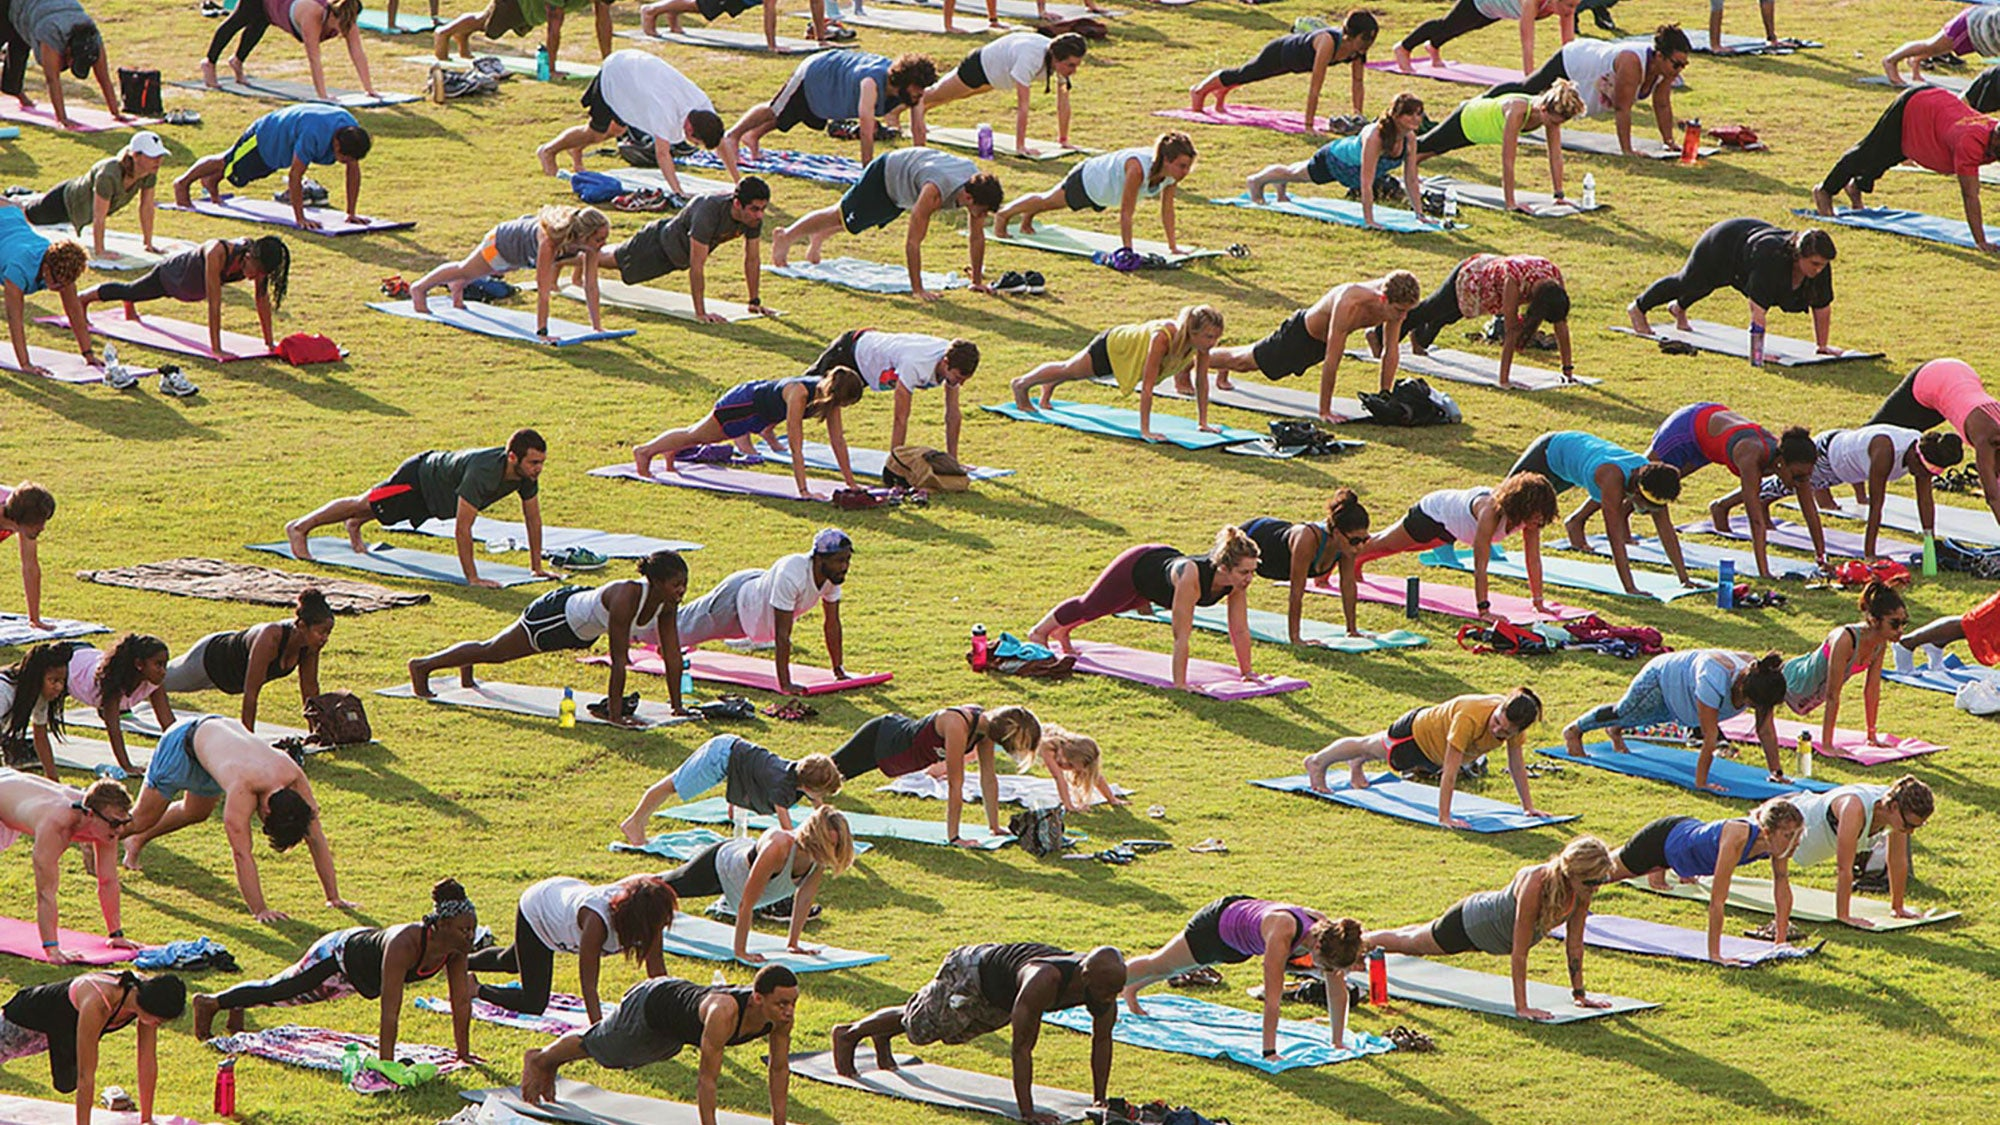 Lots of people doing yoga in a field of grass